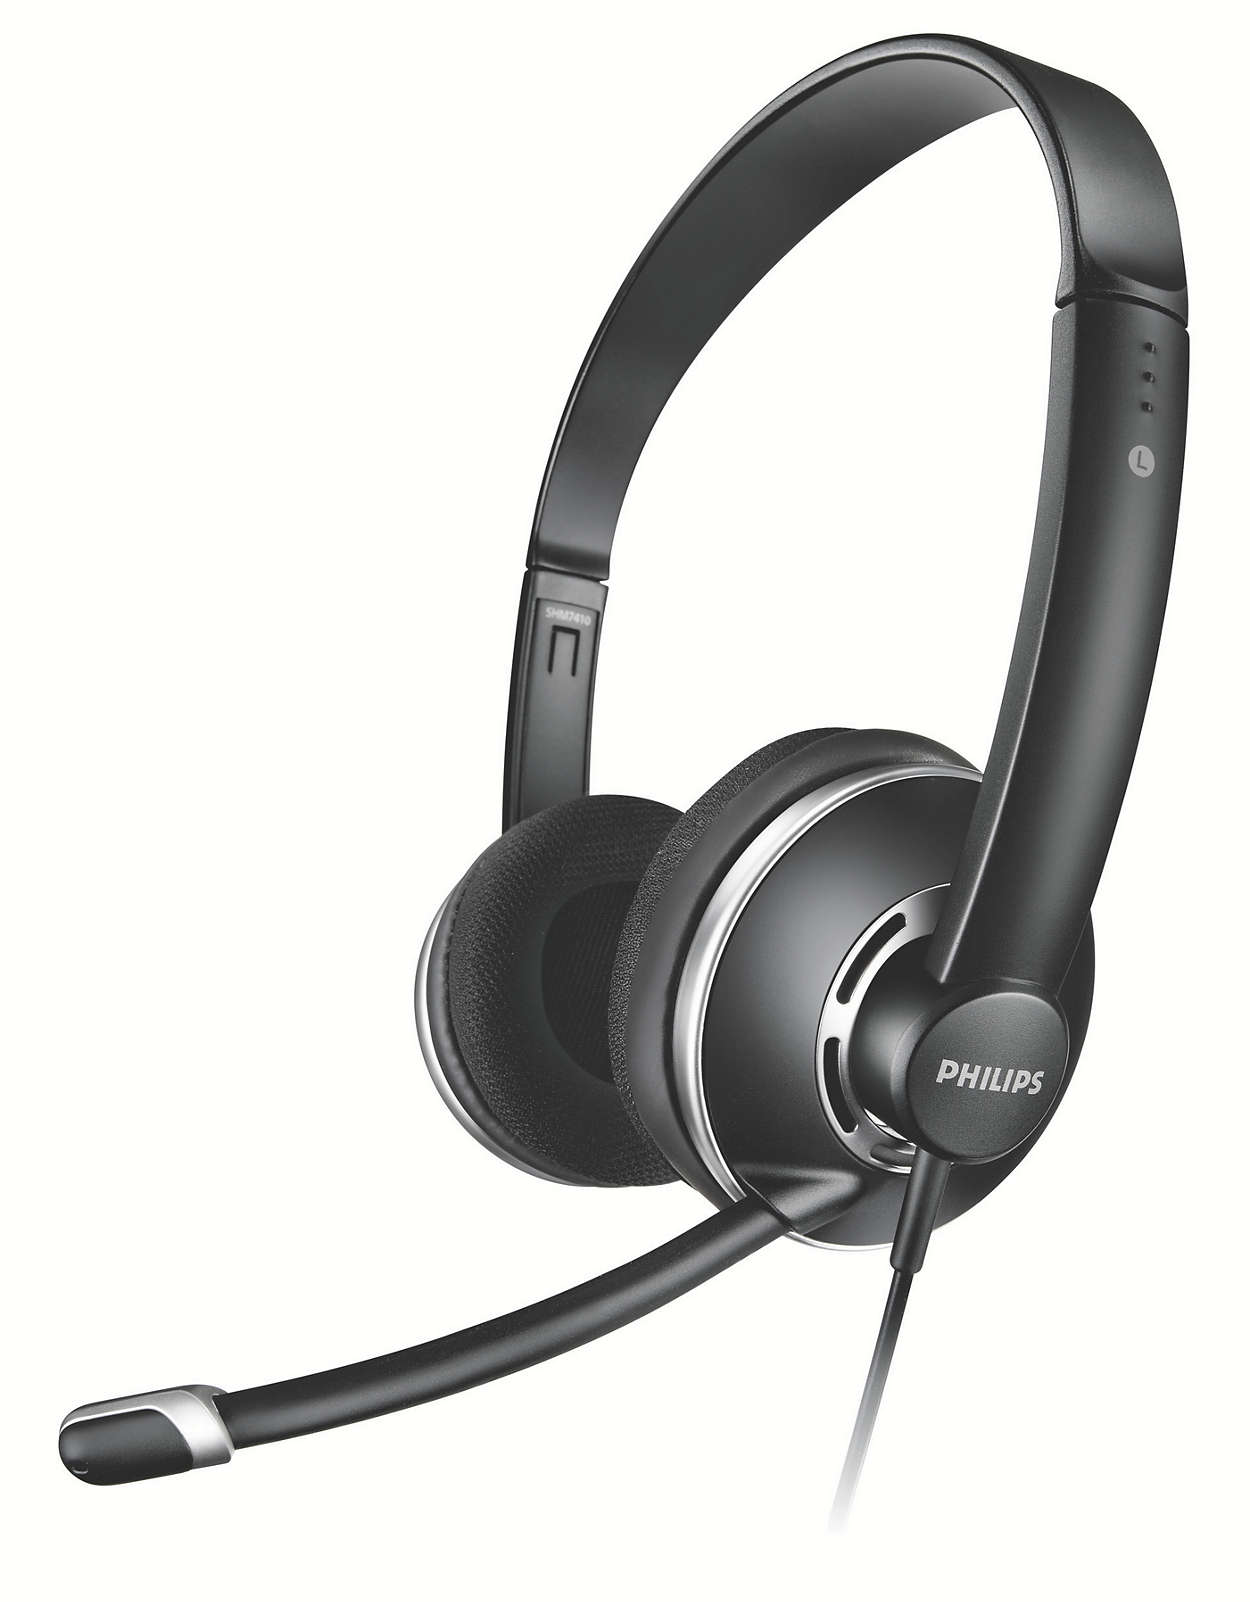 Full size stereo PC headset